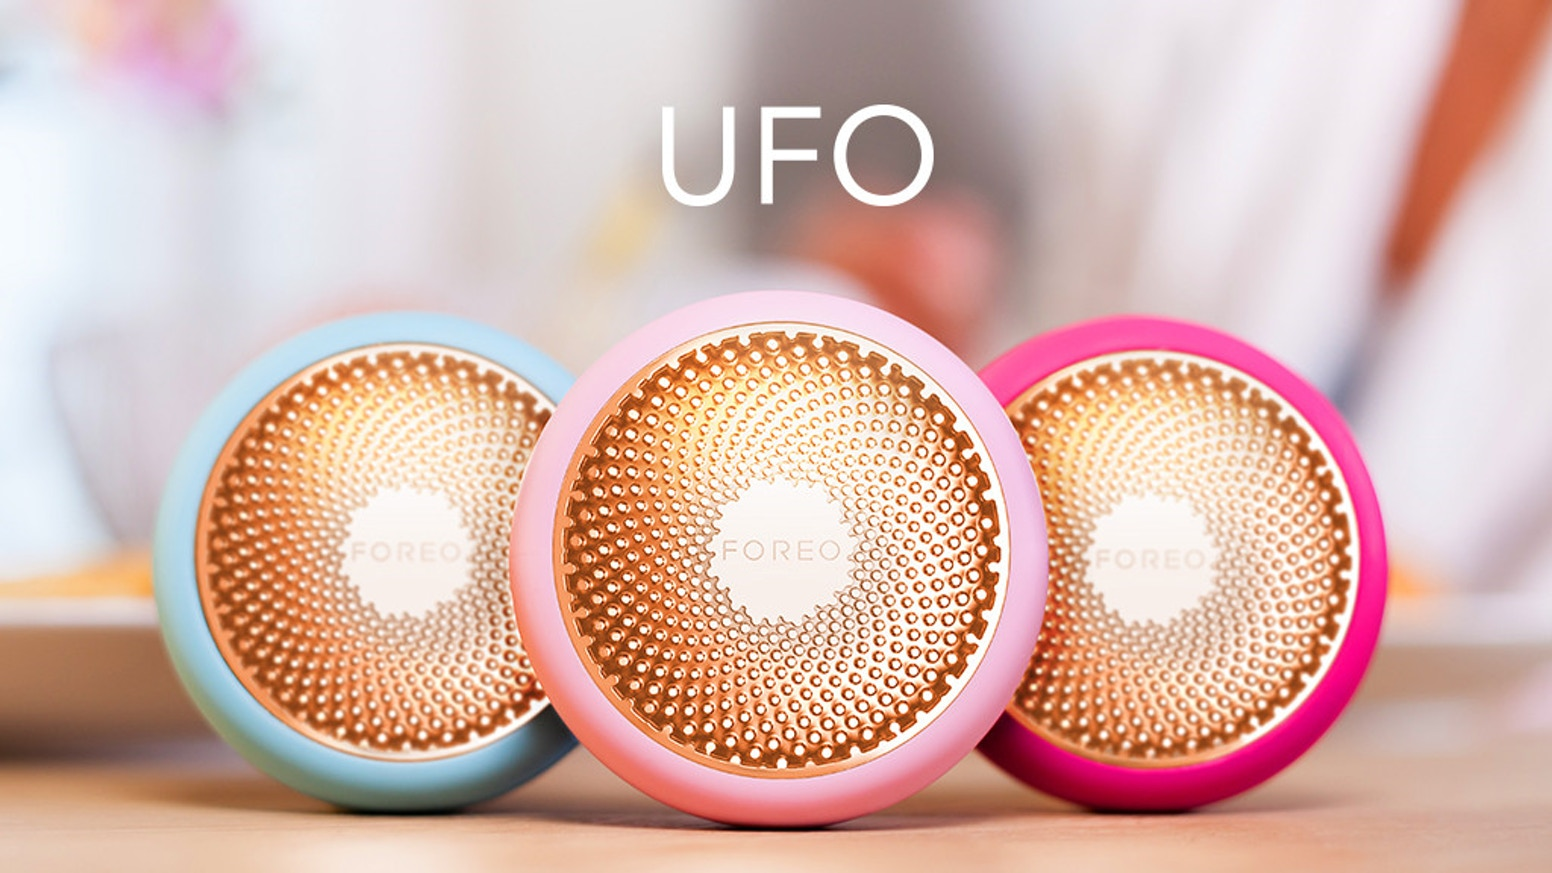 UFO combines the best of beauty and technology for a spa-worthy facial treatment in just 90 seconds.